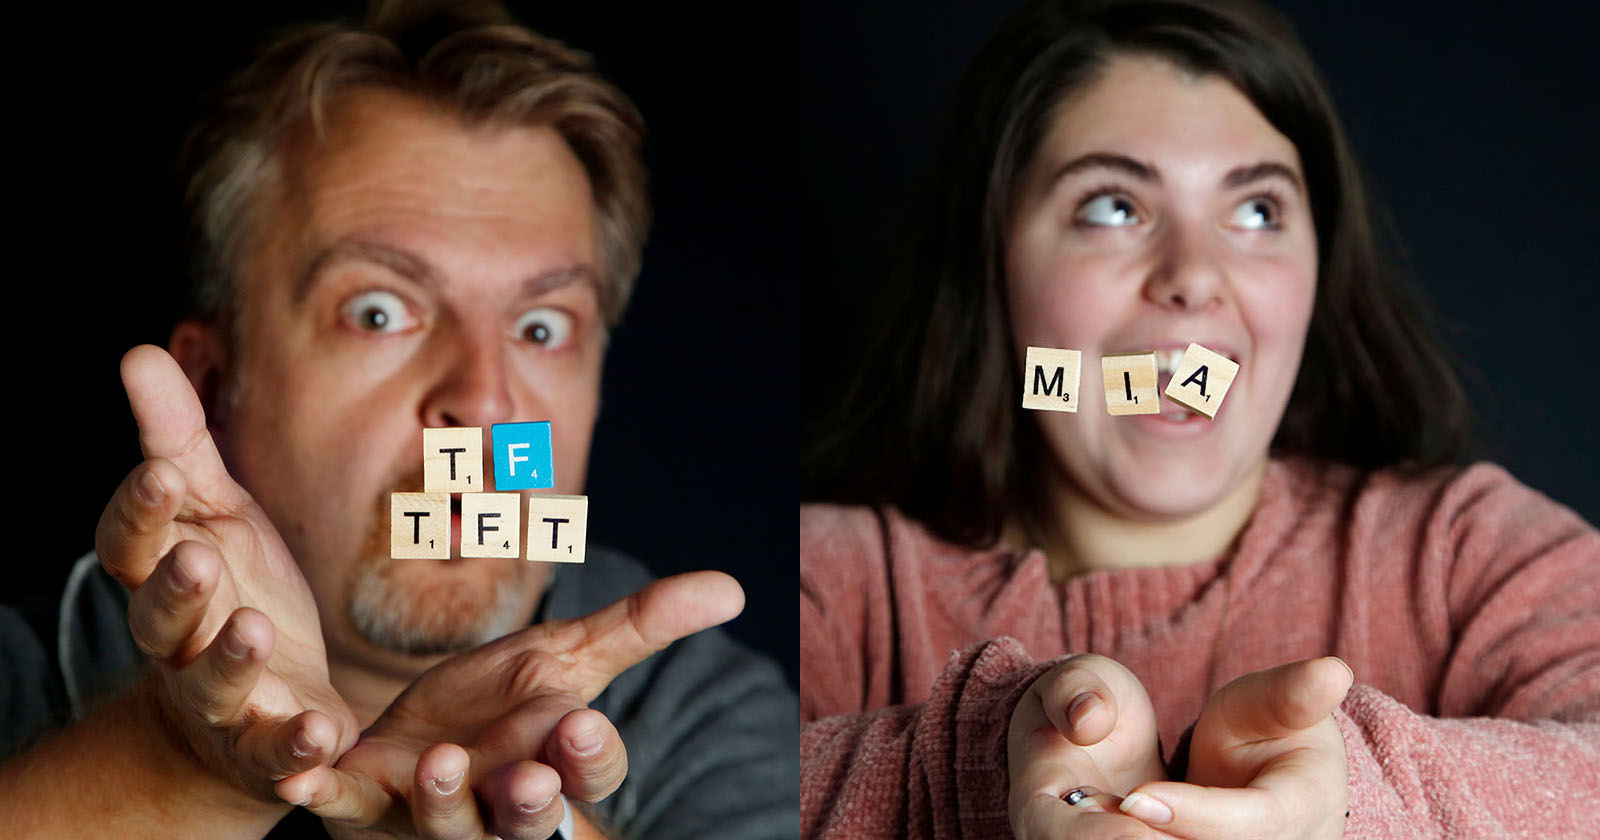 how to photograph mysterious floating scrabble letters petapixel